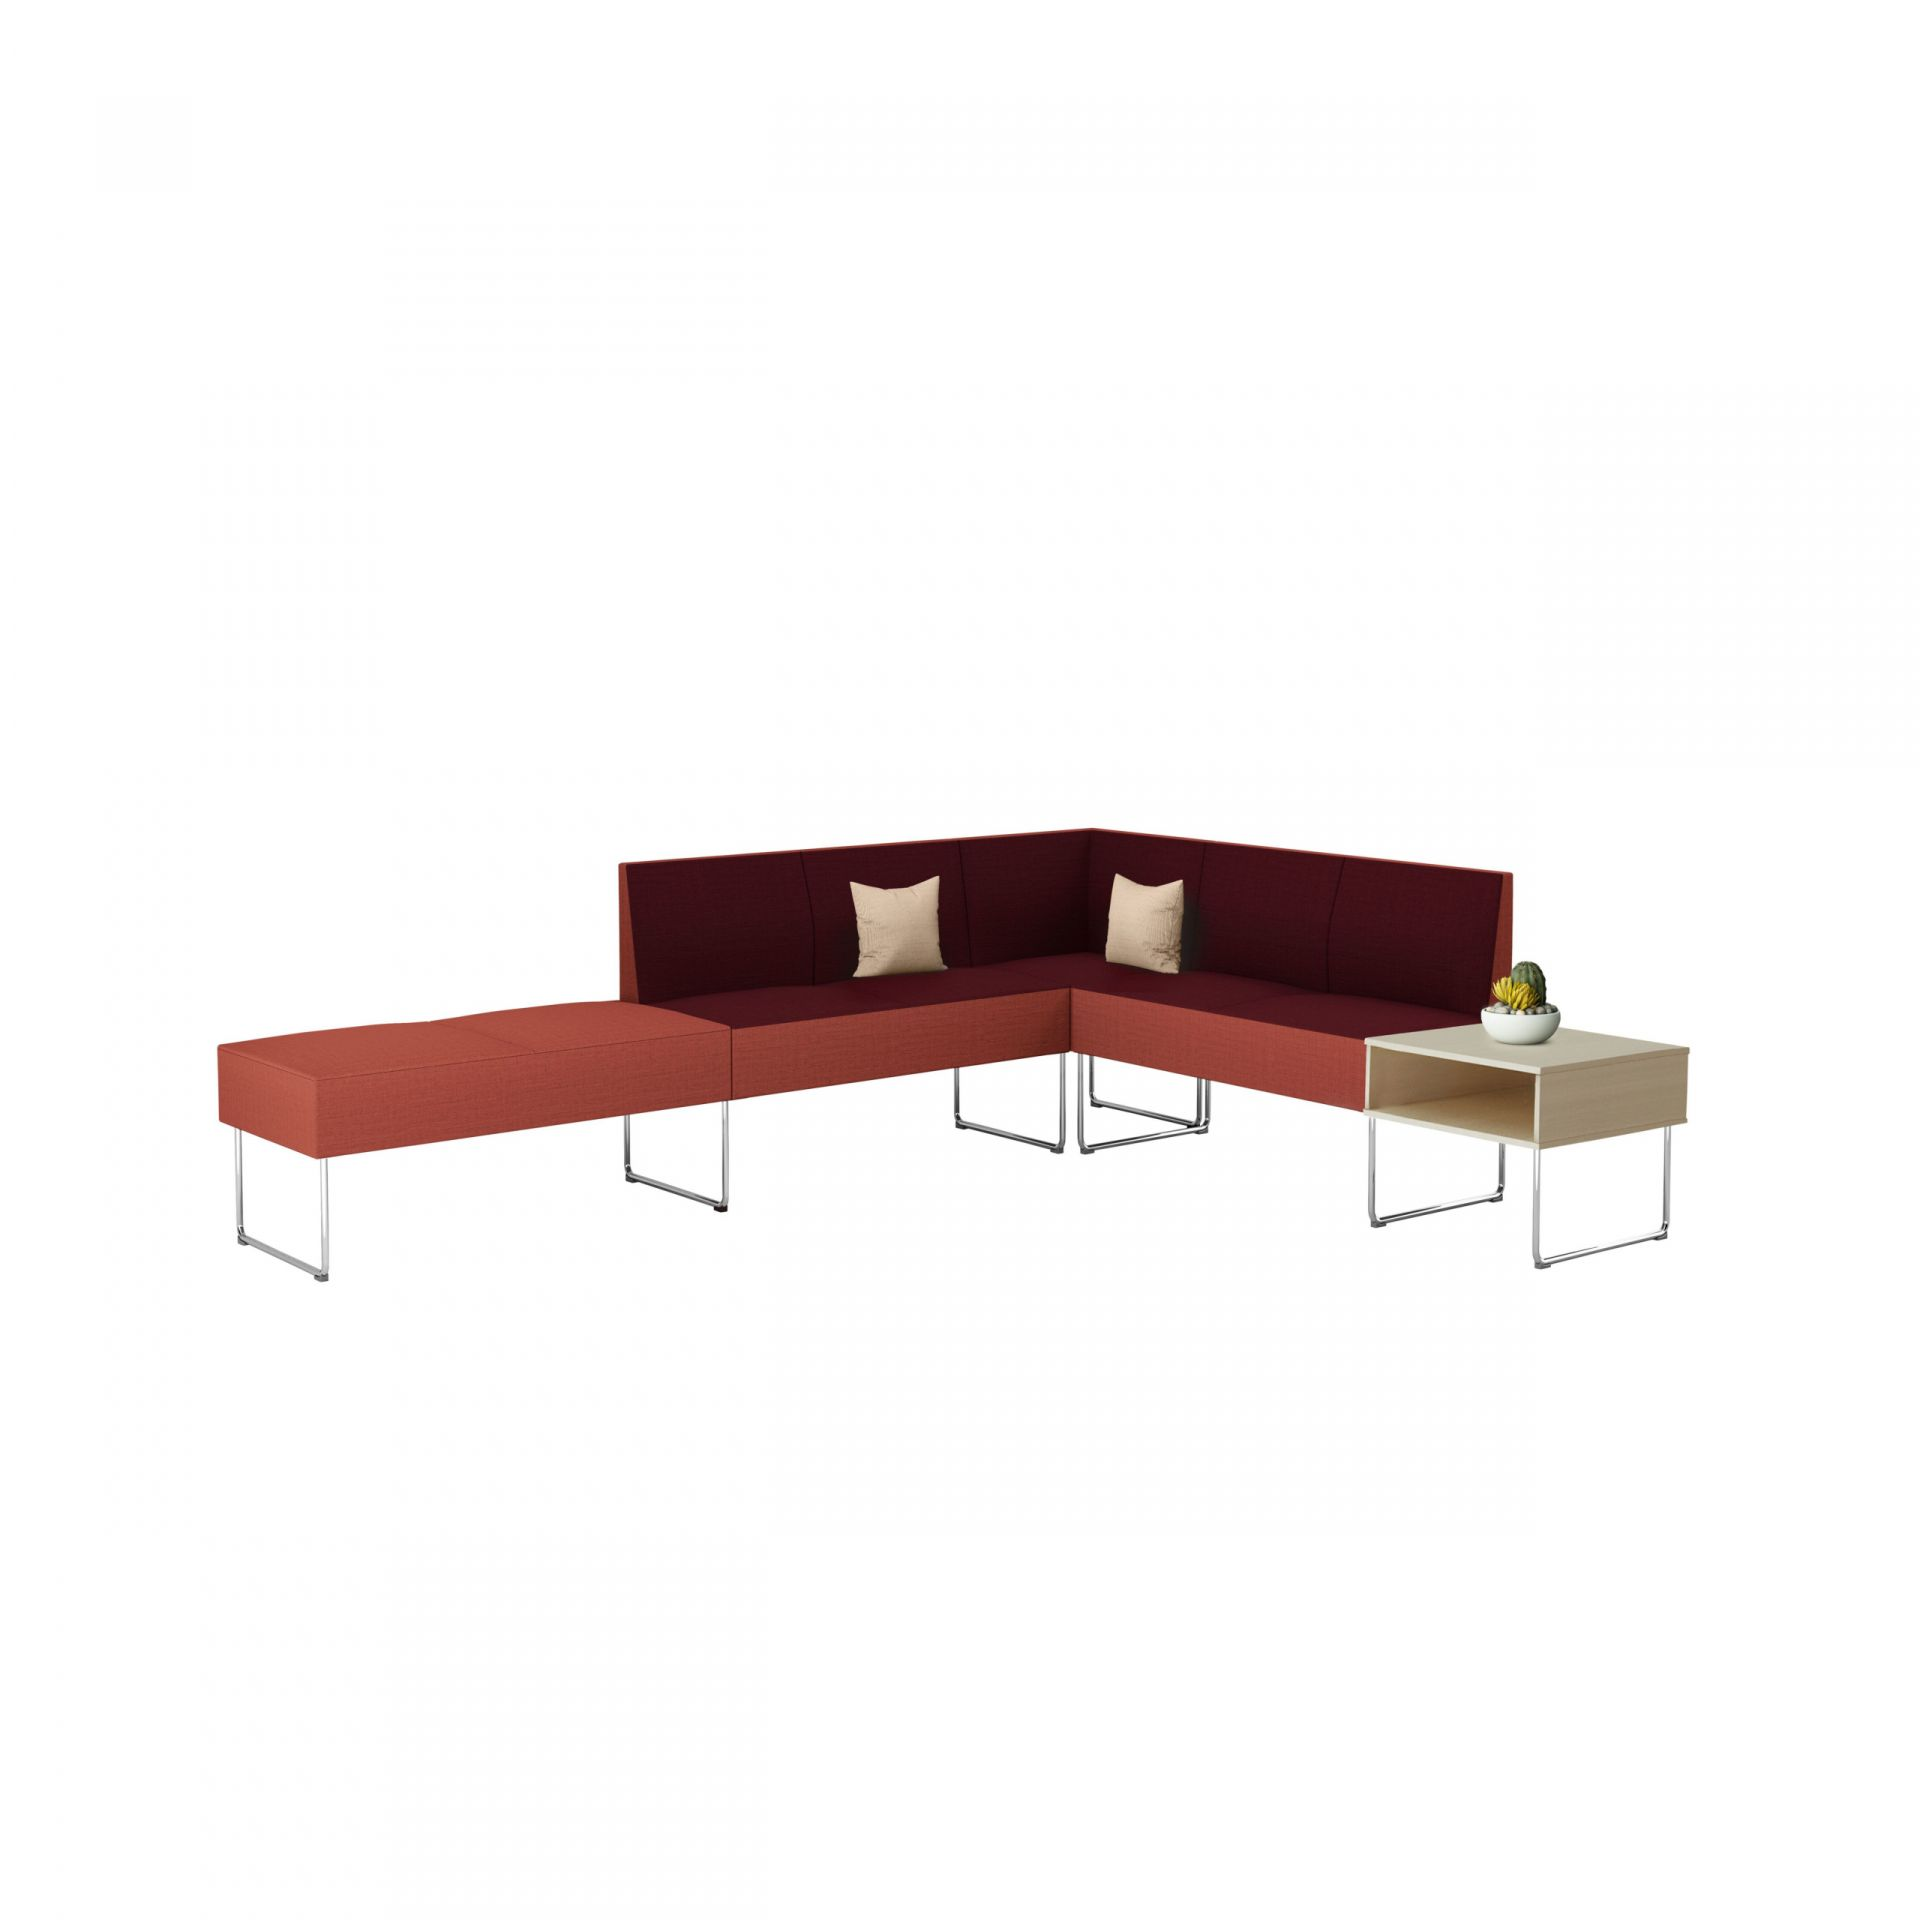 Mingle Buildable seating modules product image 4